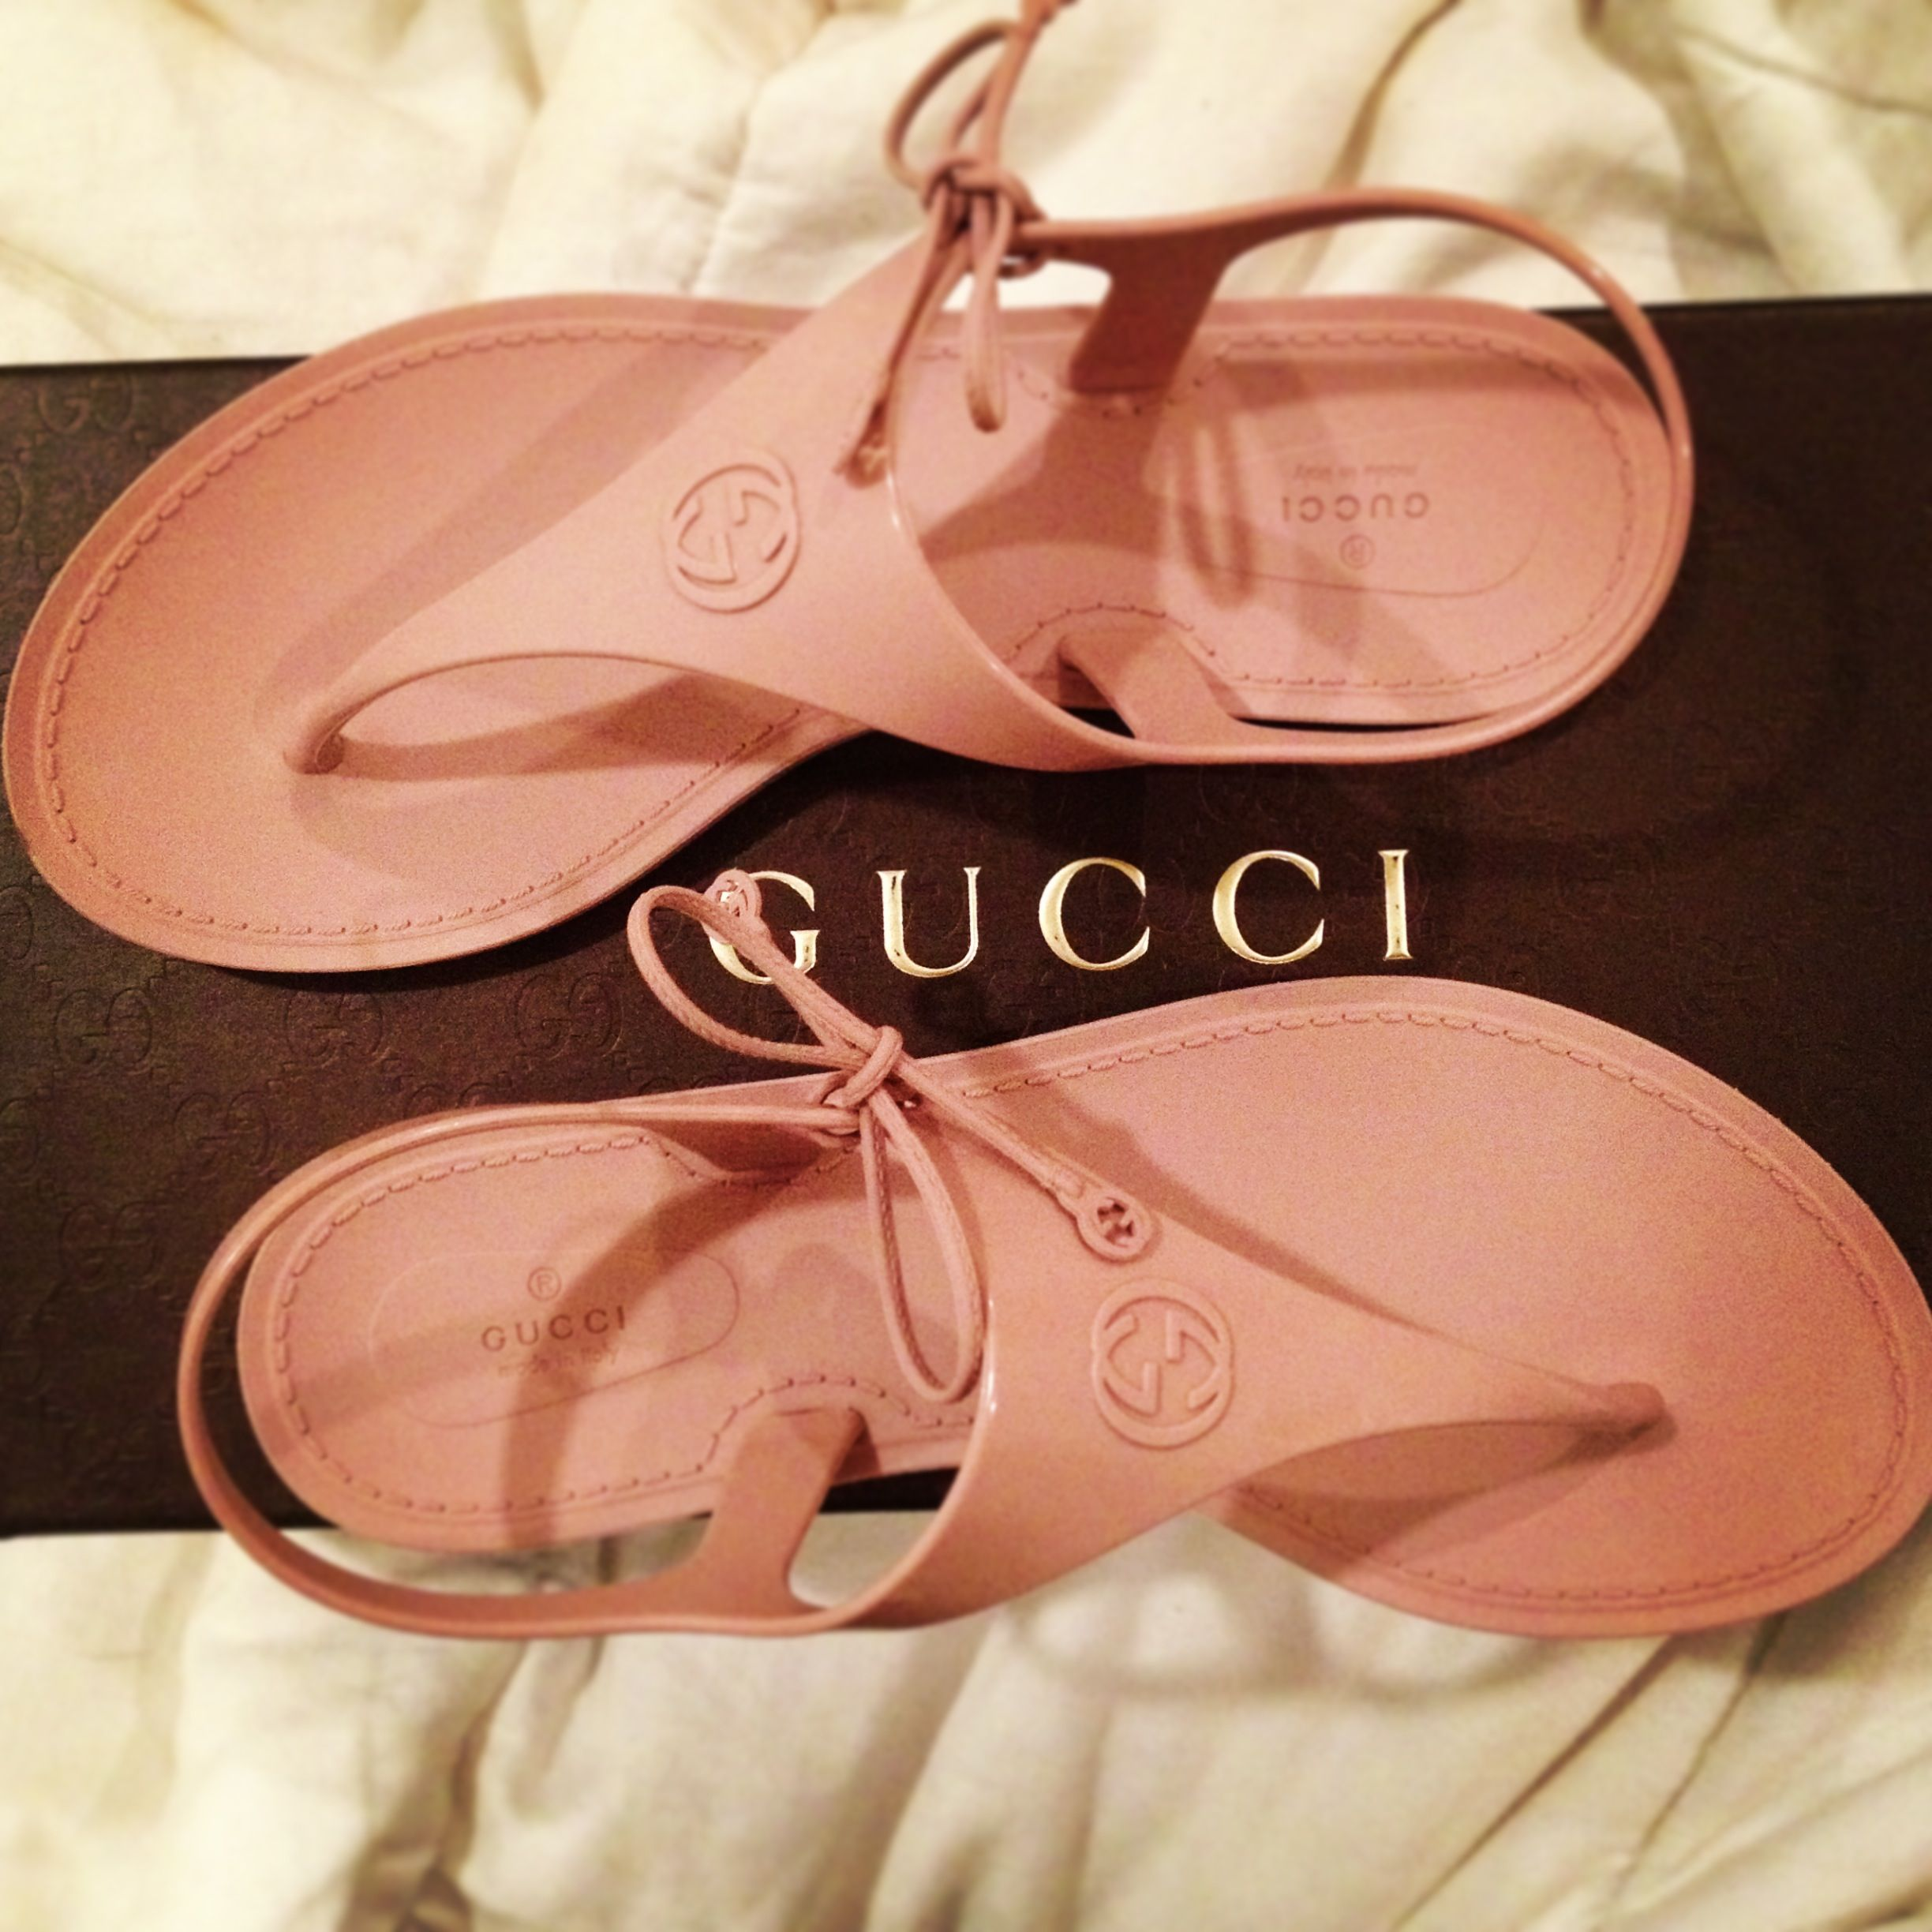 56ddb2f2601 Gucci jelly sandals. Jelly sandals are essentials for the summer ...